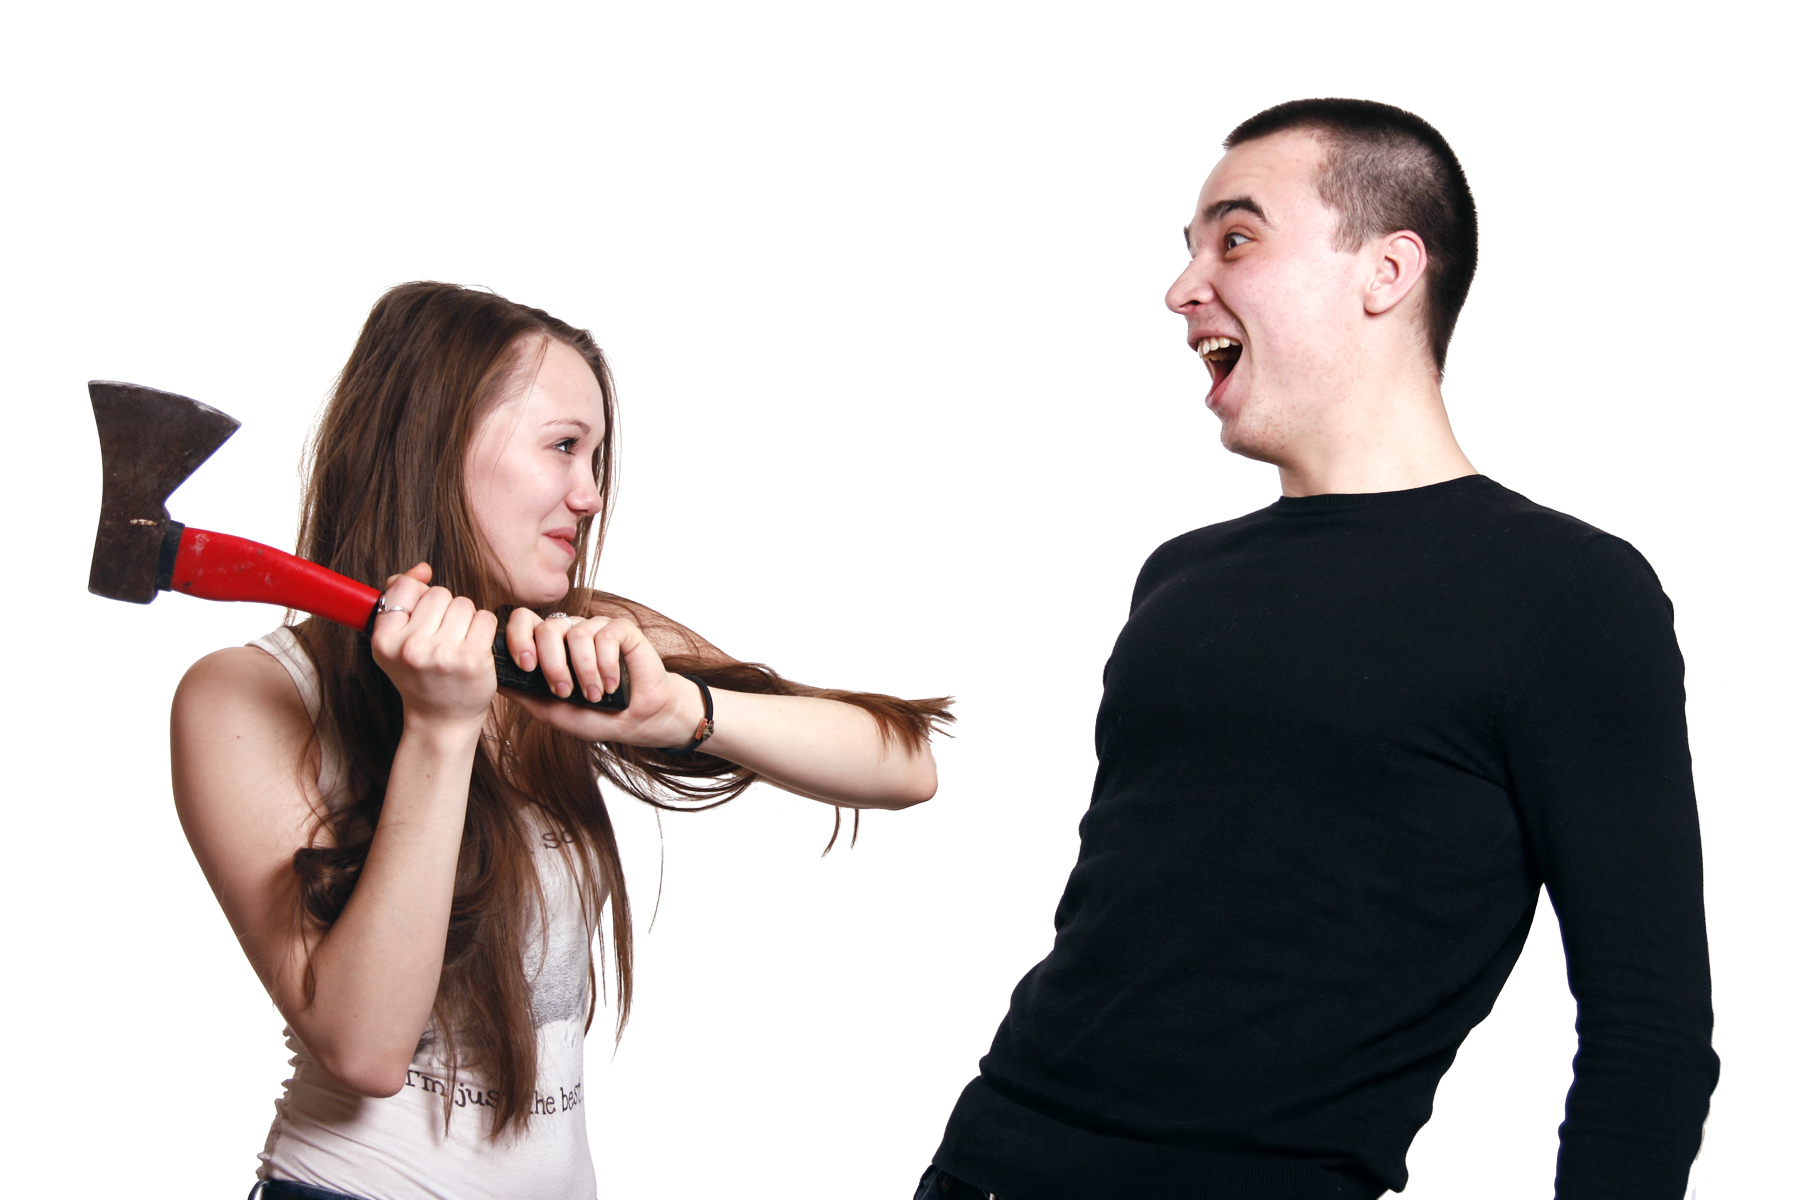 Girl holding red axe photo